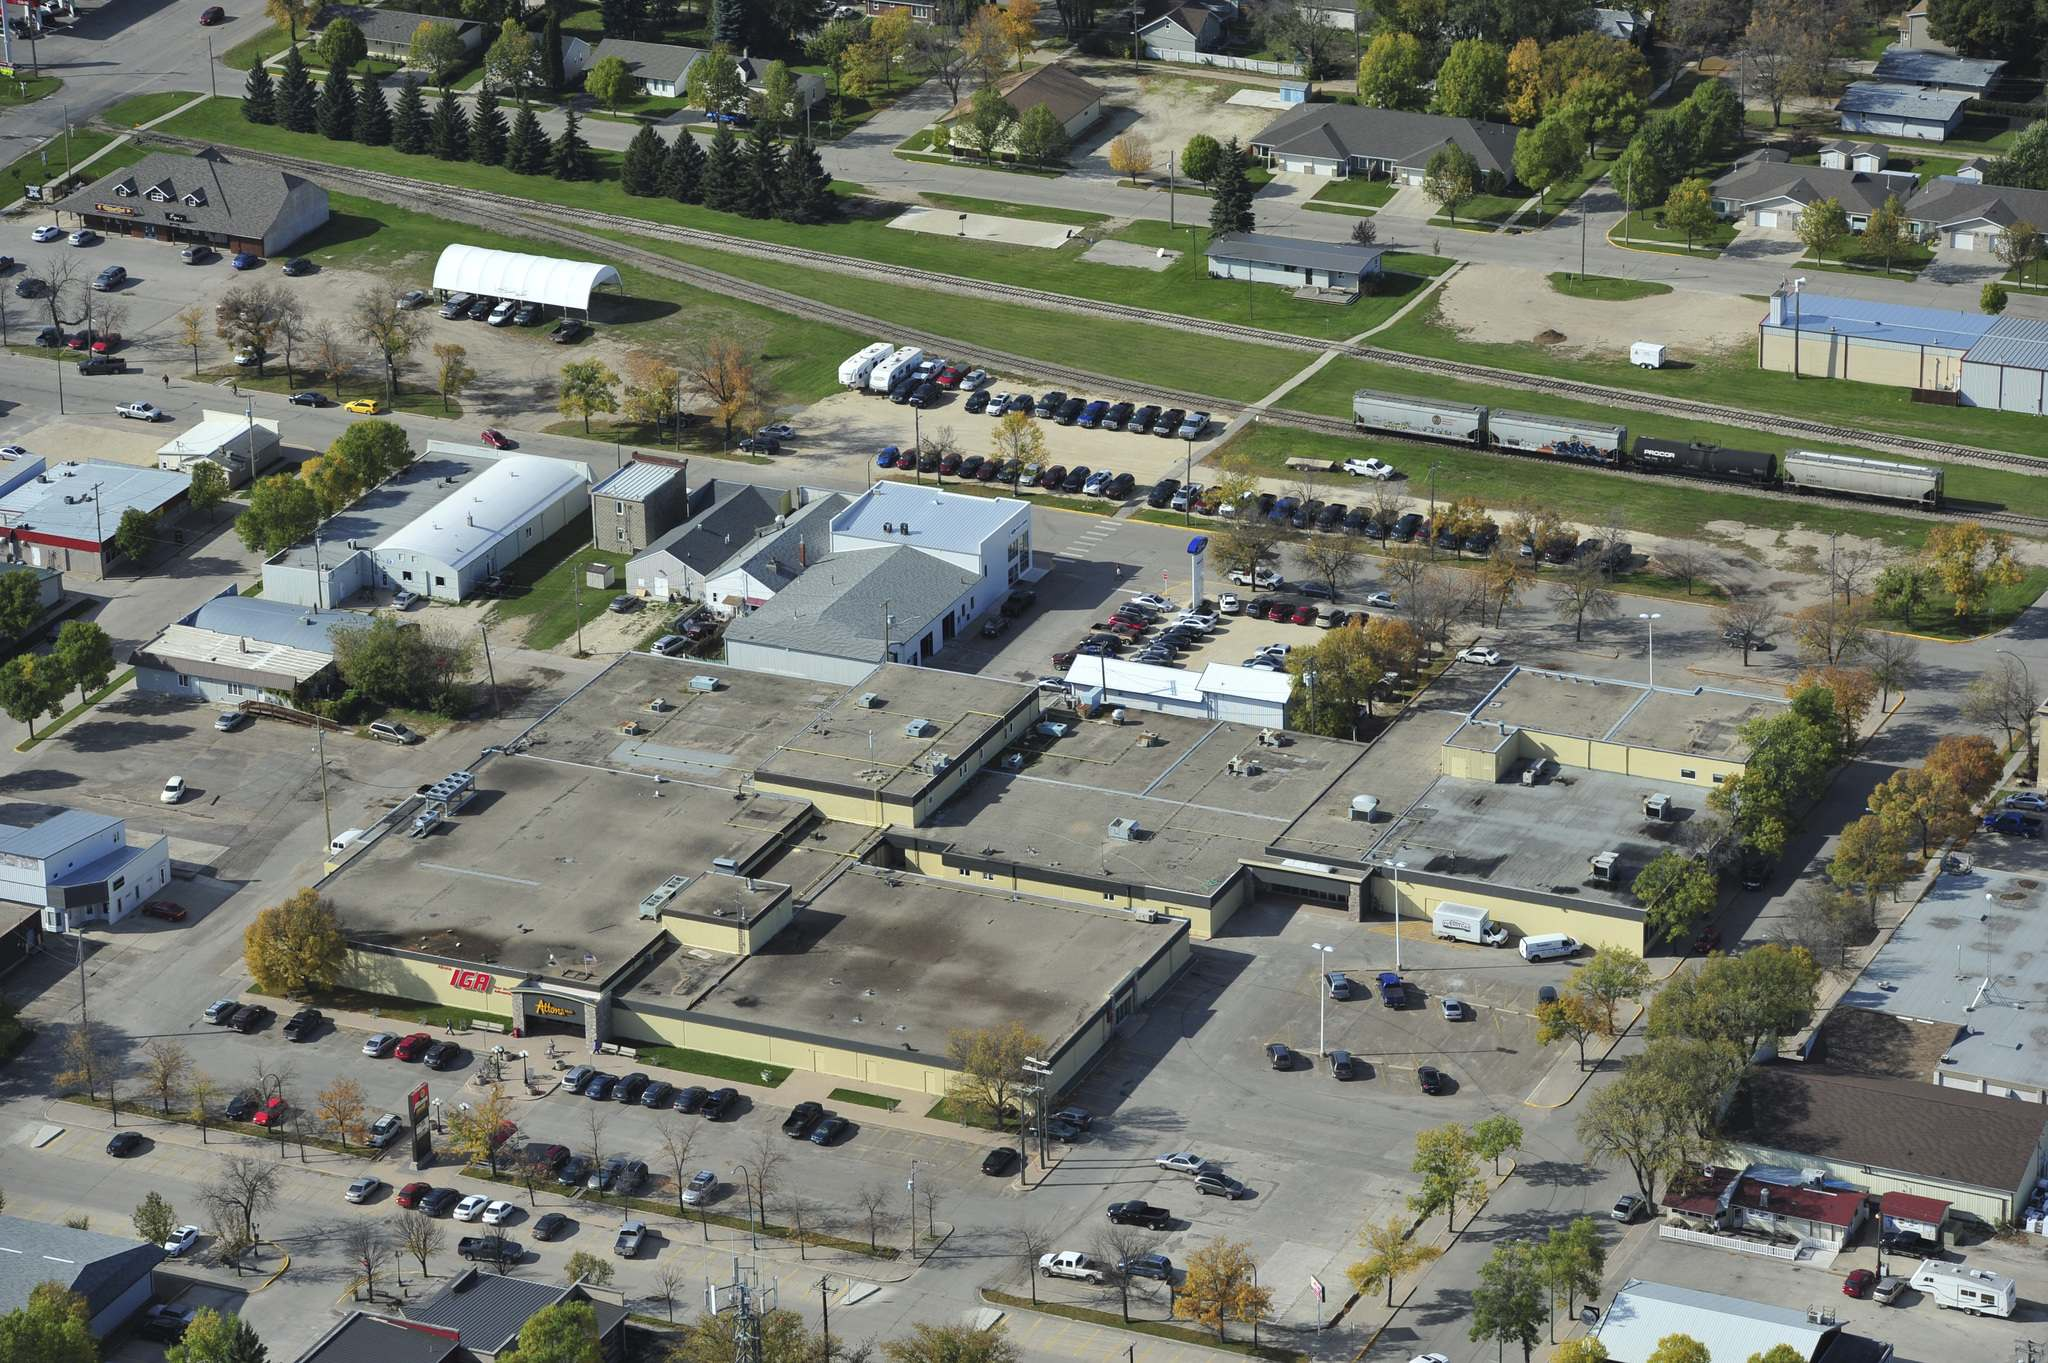 <p>Altona, a town of 4,200 people, is home to Altona Mall which claims to be the oldest mall in rural Manitoba.</p>